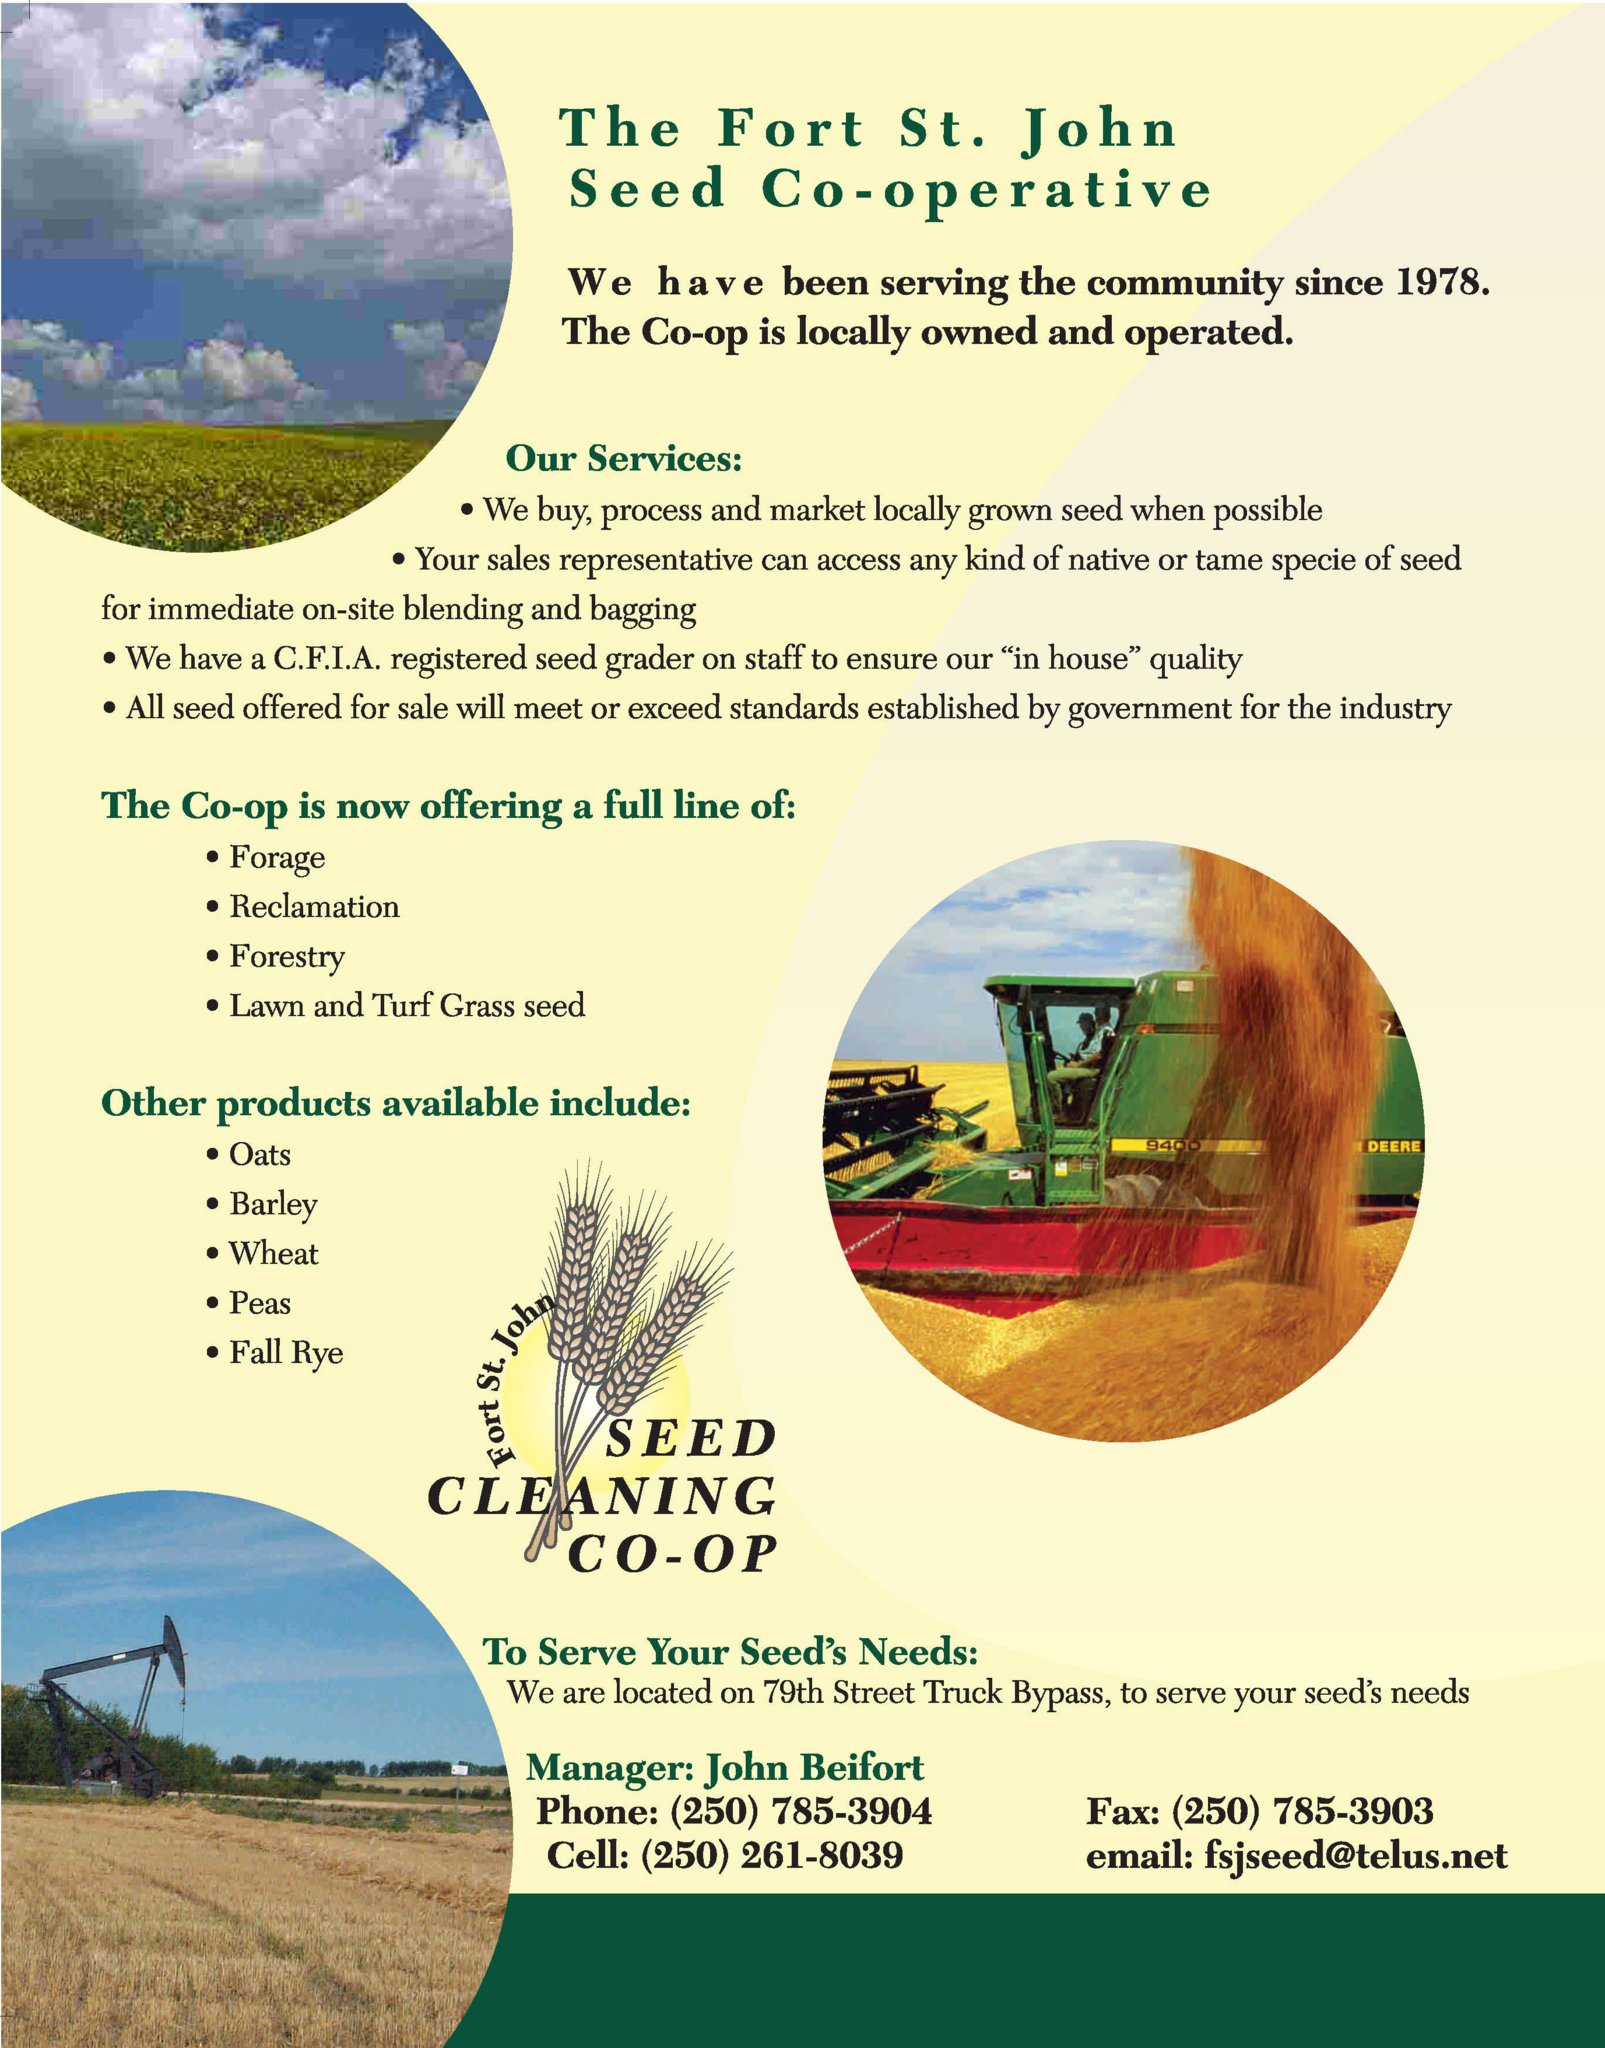 Fort St John Seed Cleaning Co-Op in Fort St John